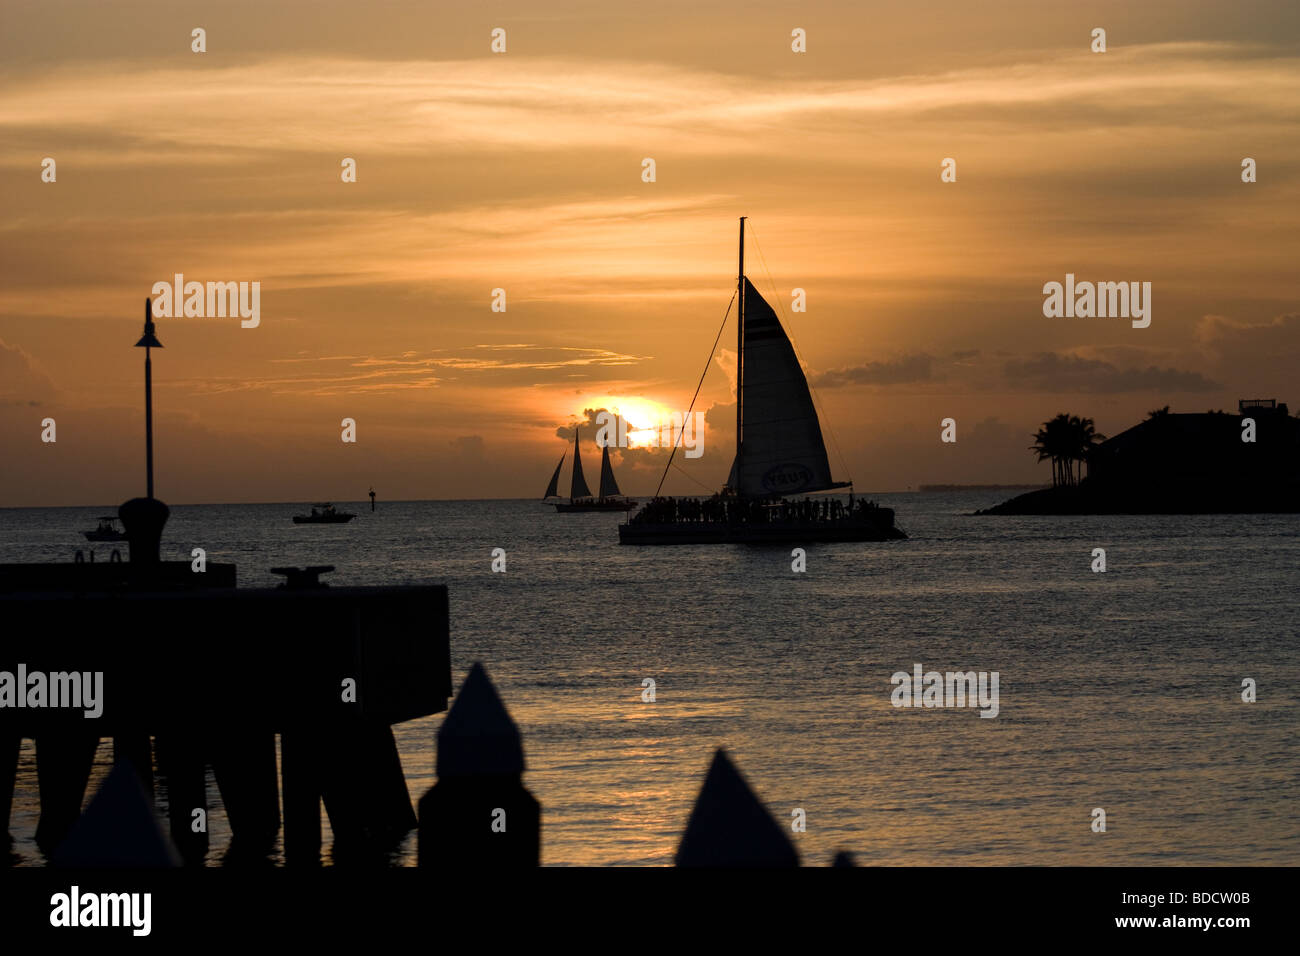 Boats at Key West at sunset Stock Photo